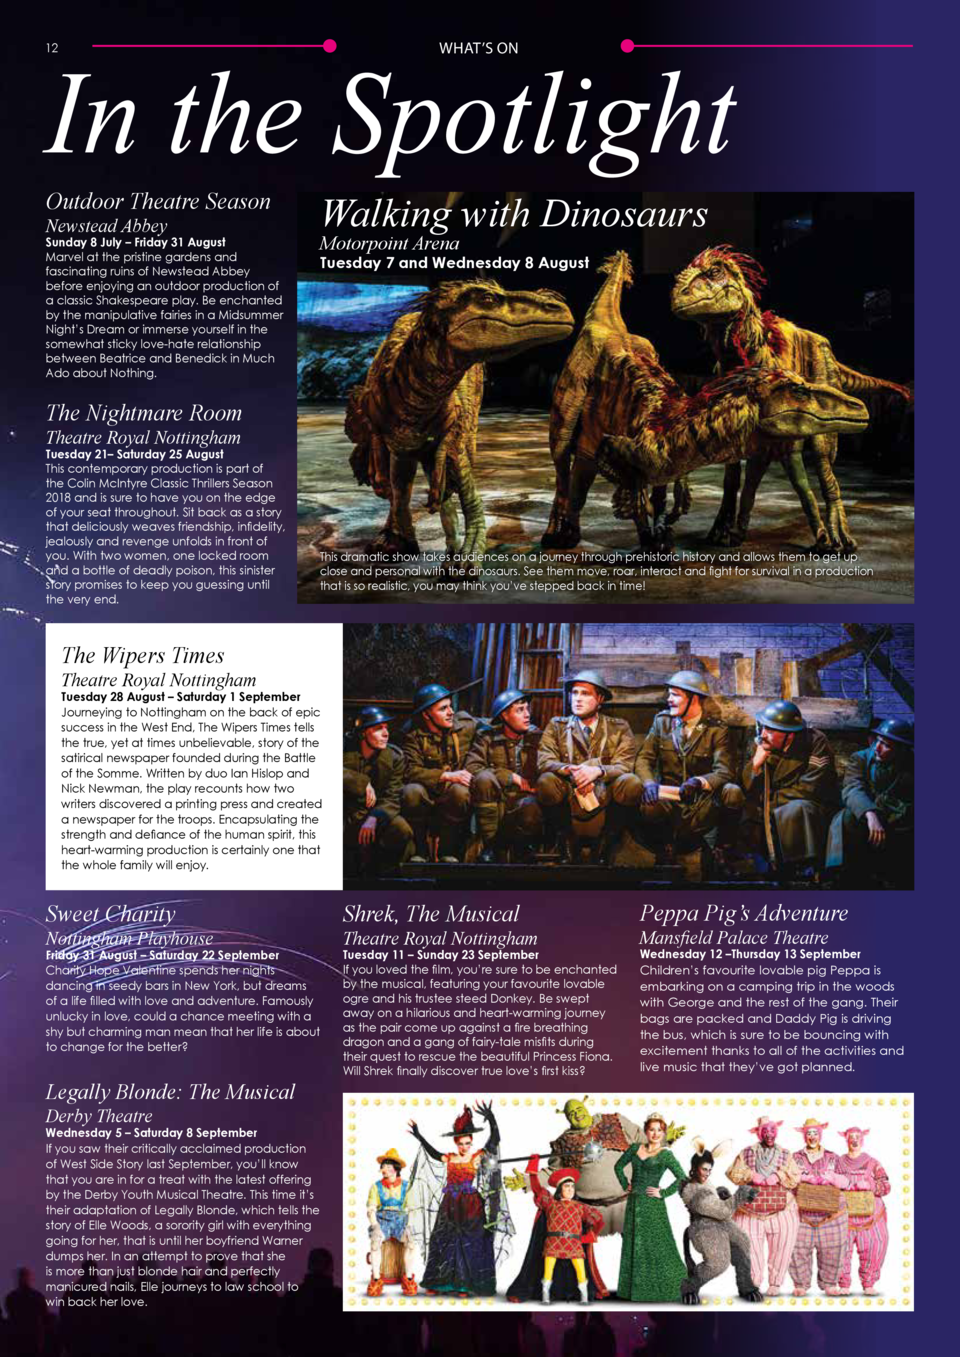 In the Spotlight     ON WHAT   S  12  Outdoor Theatre Season  Walking with Dinosaurs  Newstead Abbey  Motorpoint Arena  Su...